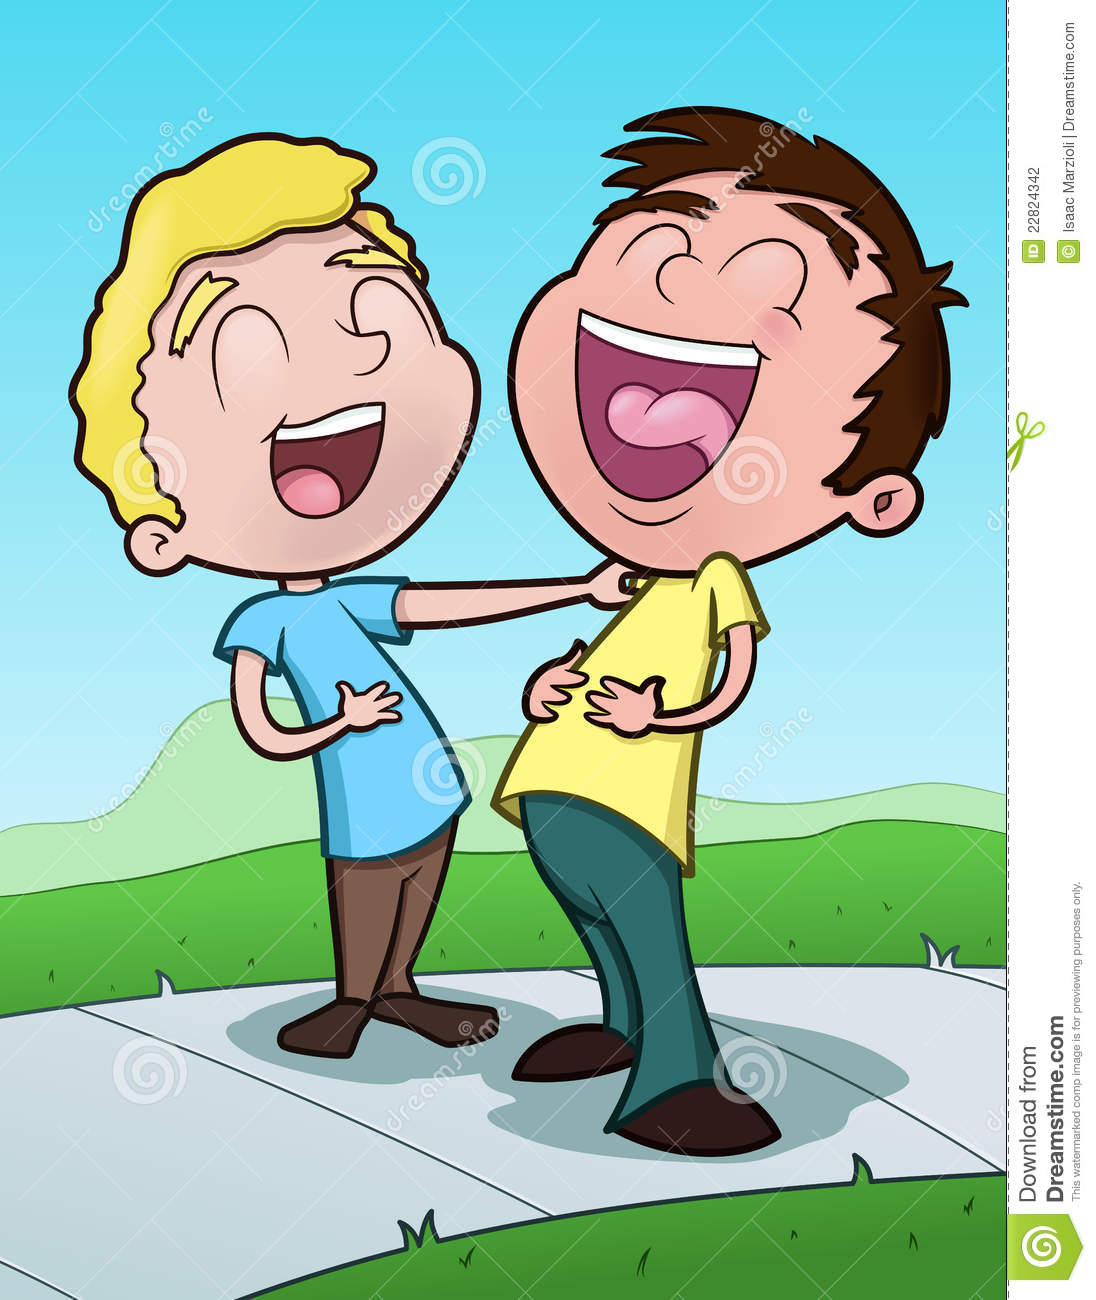 Children laughing clipart picture free Friends Laughing Clipart - Clipart Kid picture free